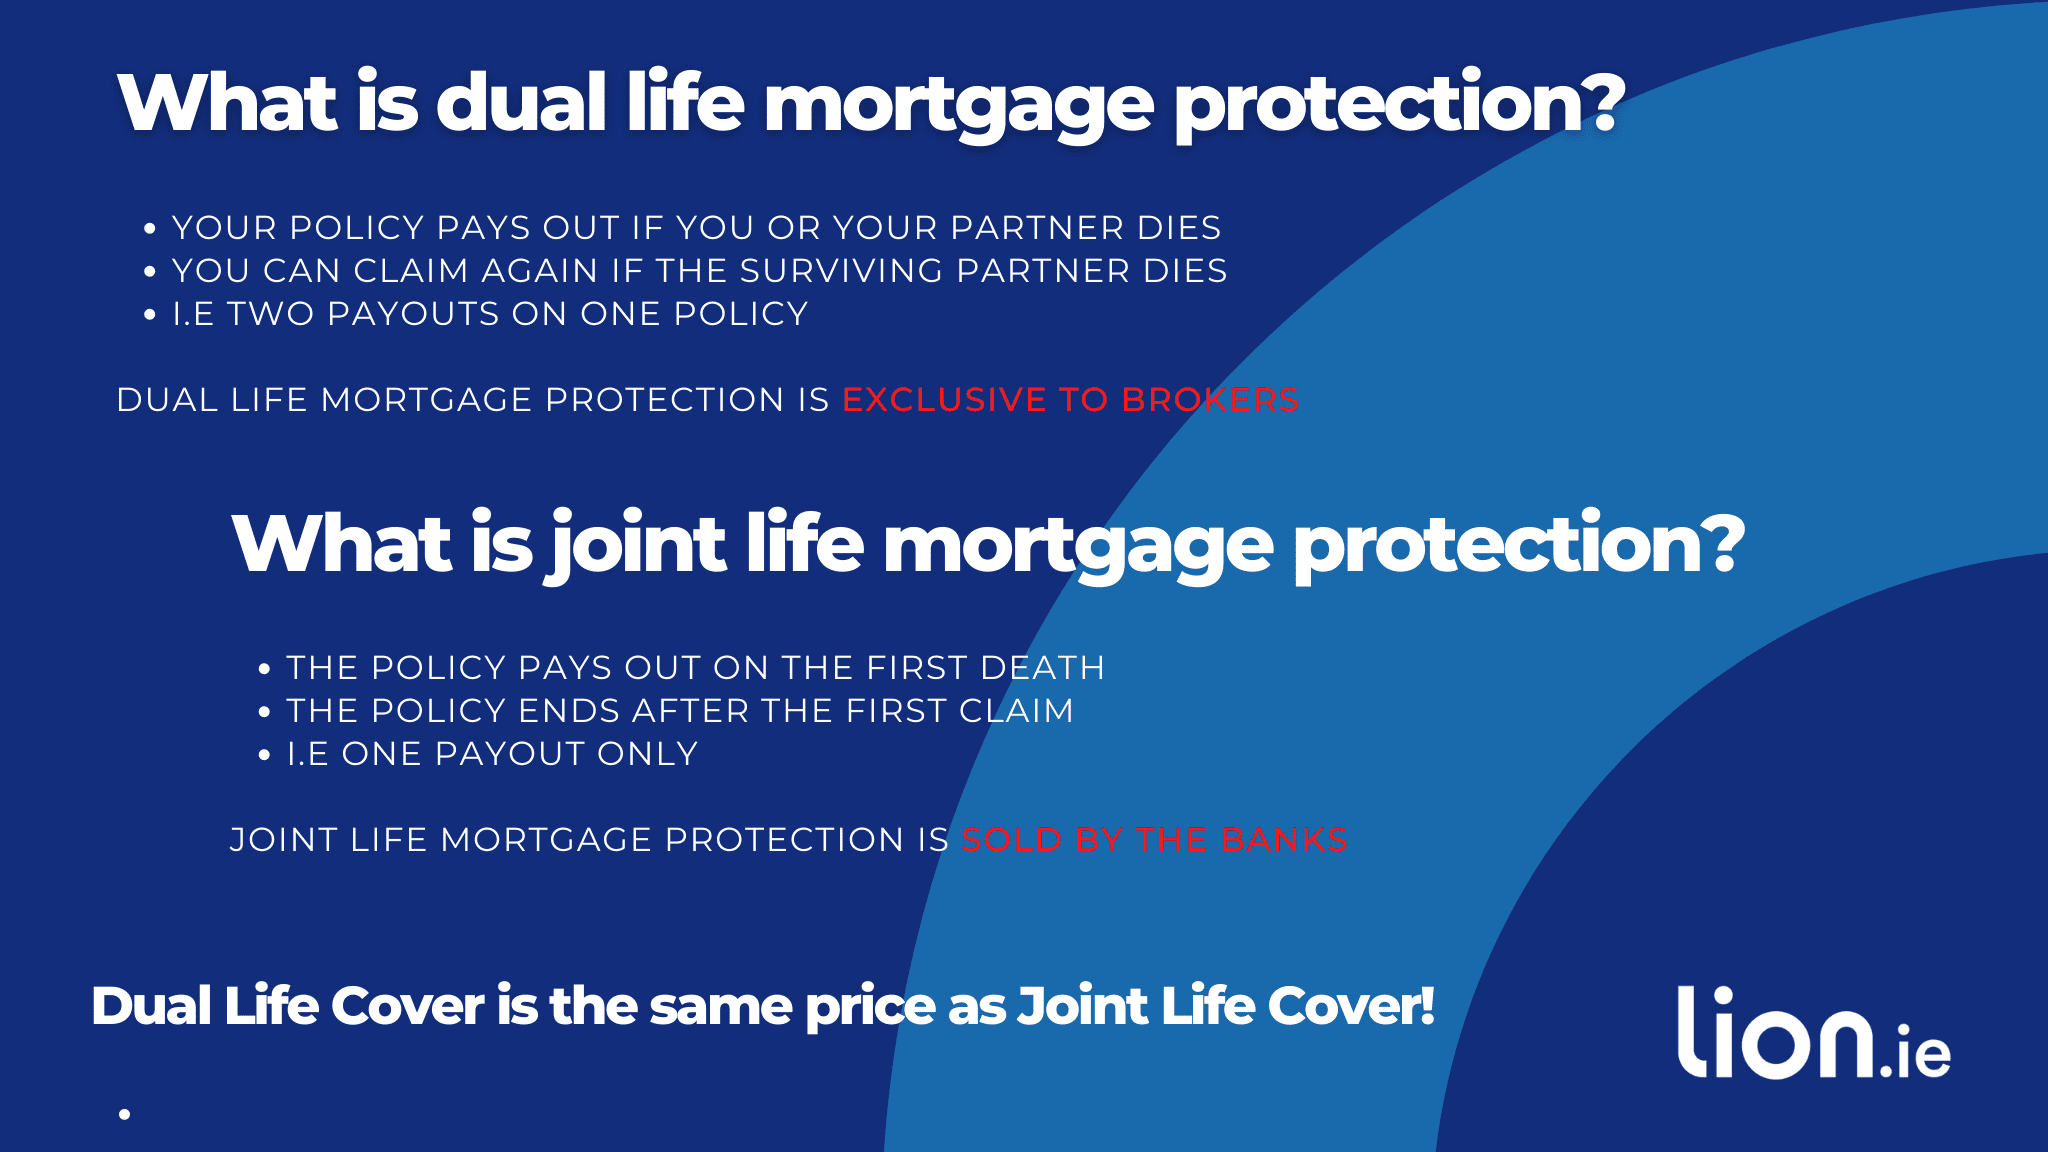 what's the difference between dual and joint life mortgage protection